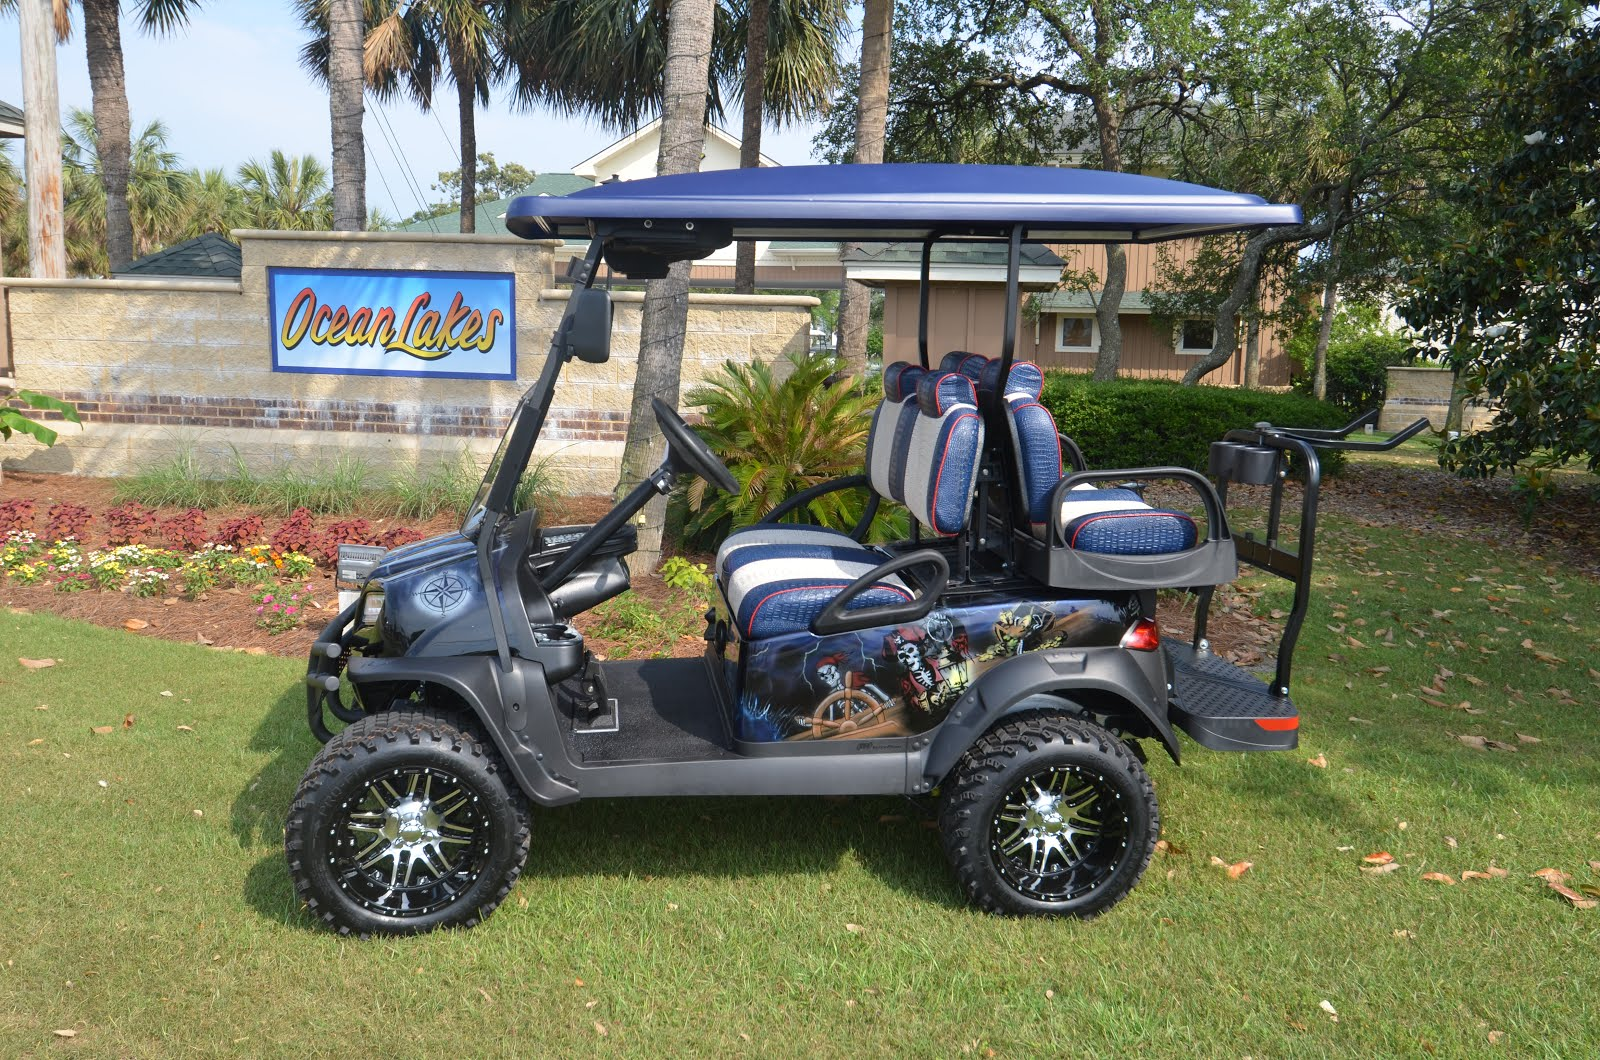 Ocean Lakes: This is what you get when pirates take over a golf car on